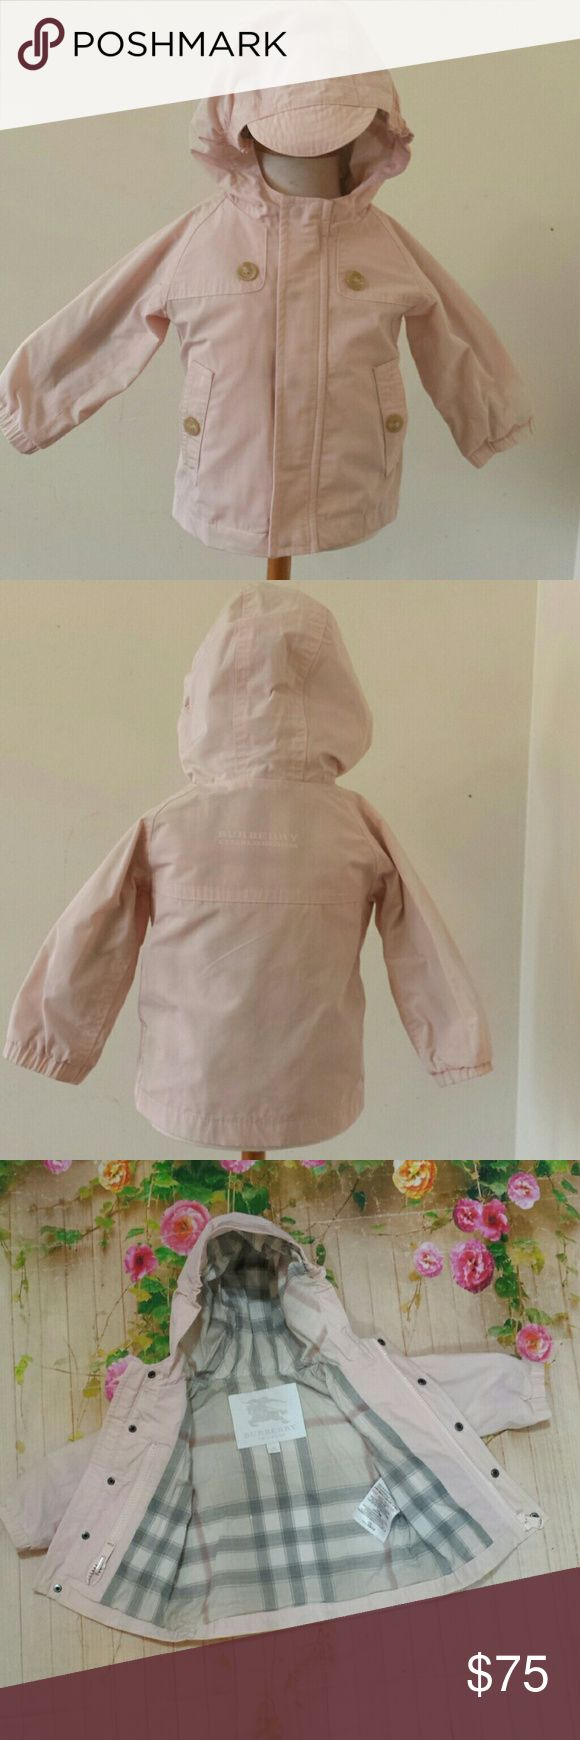 Burberry baby girl 6m pink light rain wind jacket Up for grabs: Burberry baby girl size 6 months lightweight jacket / windbreaker. (polyester) Pink with 'cap rim' hood. Light colored Burberry check plaid lining. (cotton) Zipper, snaps, pockets. Smoke-free pet-free home. Gently used with no flaws. Combine items and save on shipping! Contact me with any questions. Burberry Jackets & Coats Raincoats